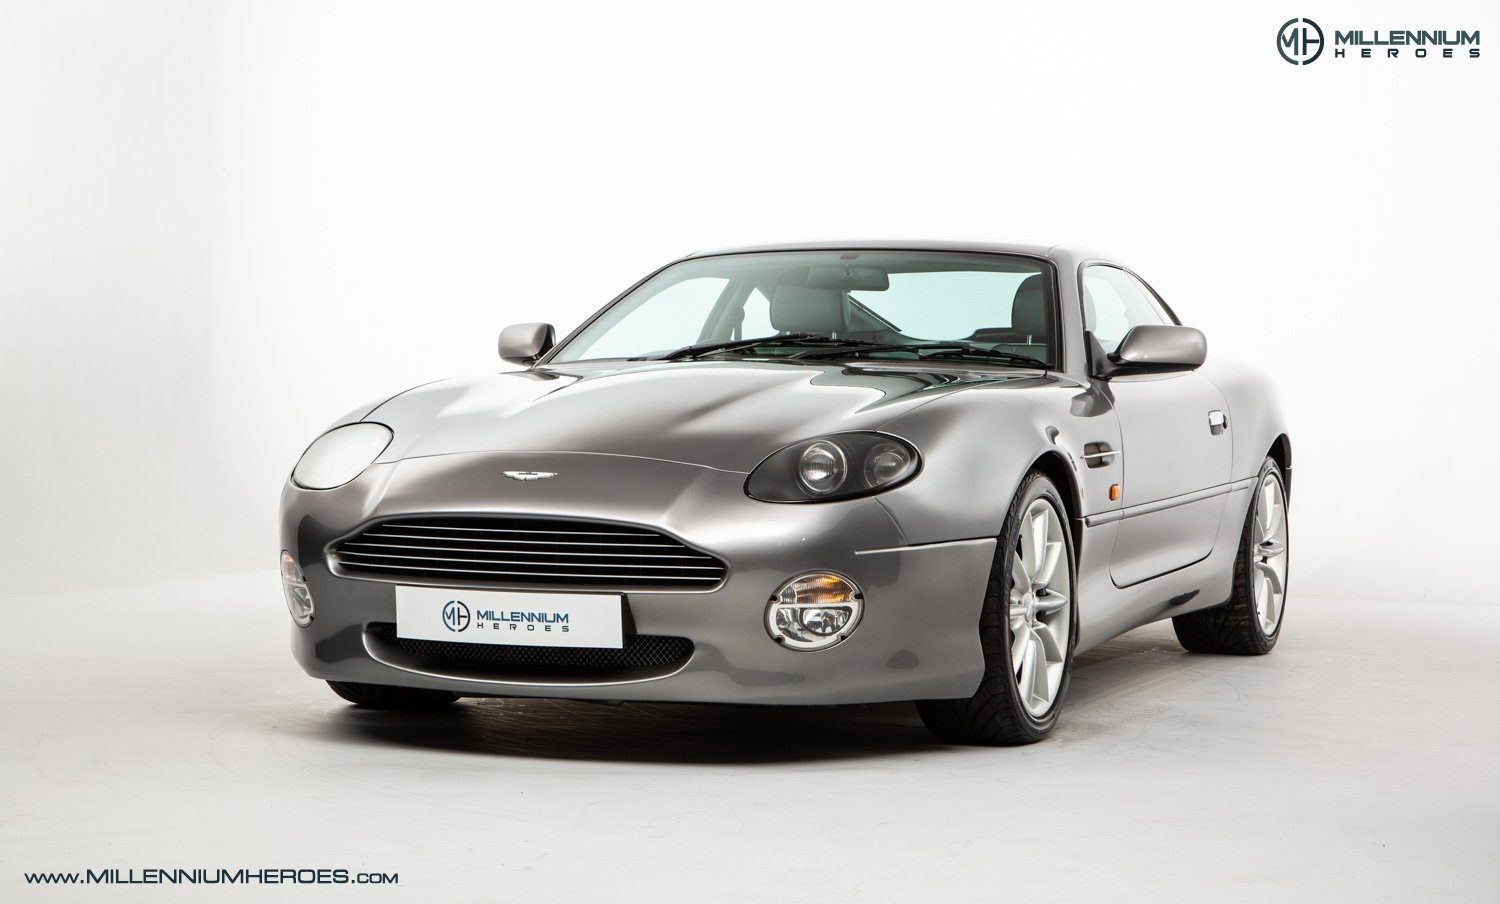 2000 ASTON MARTIN DB7 5.9 VANTAGE  For Sale (picture 1 of 24)